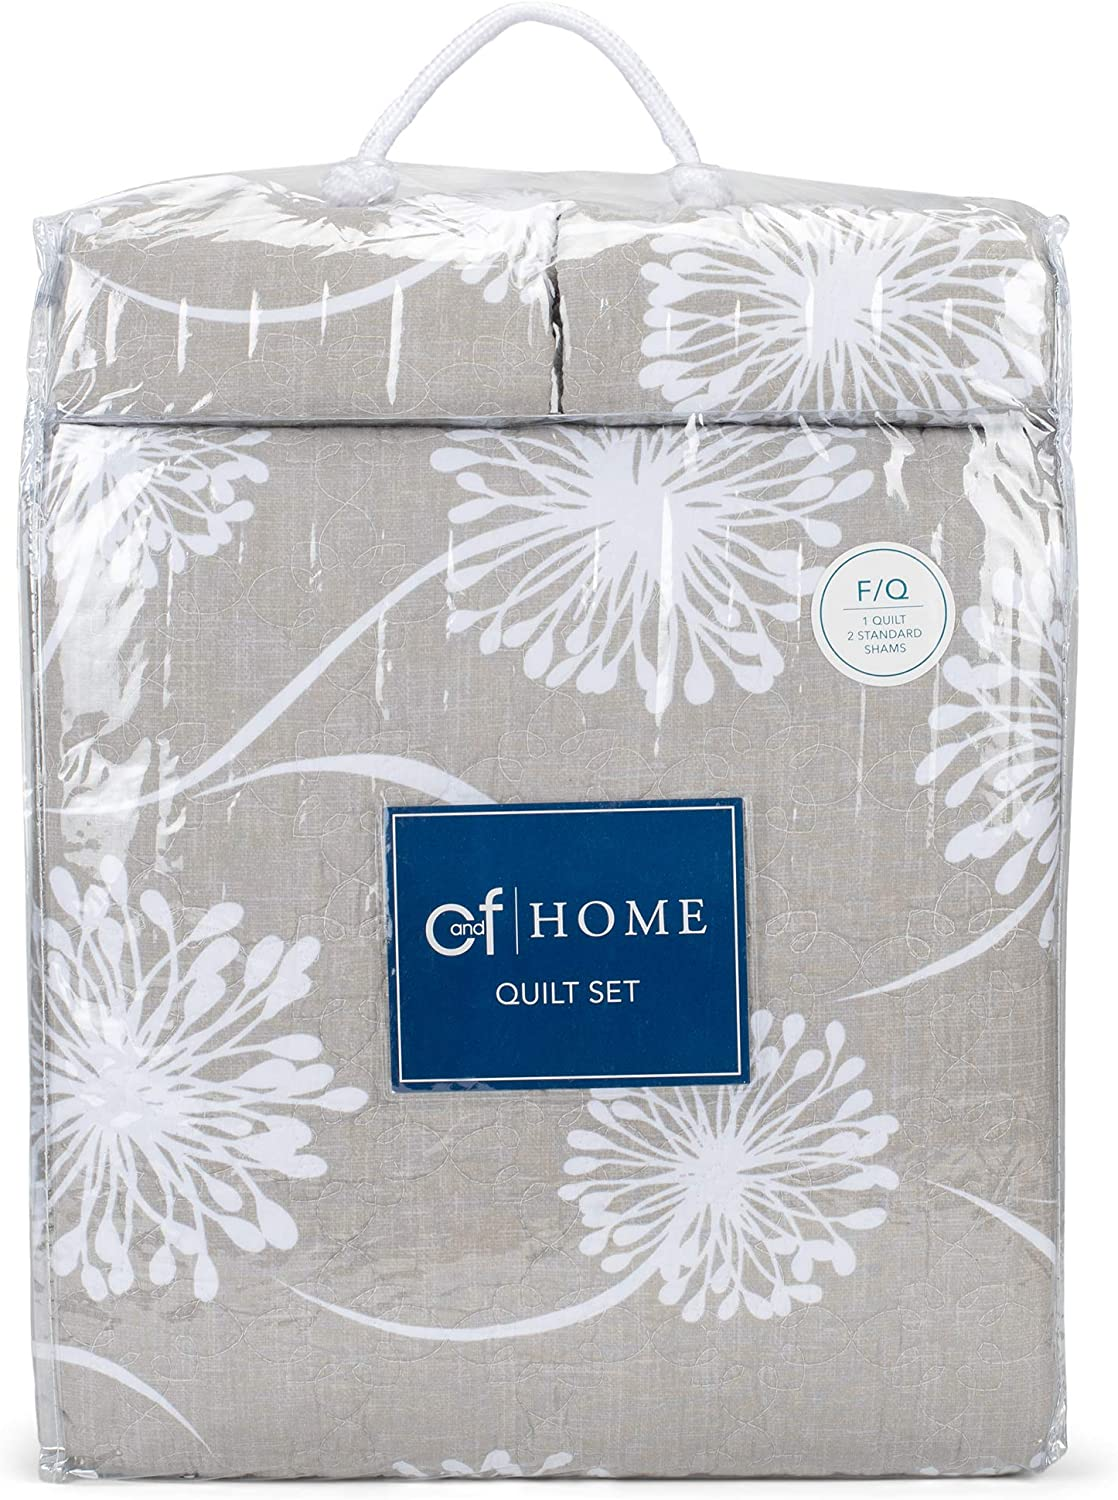 C&F Home 82451 Guinivere Quilt Set Mini Set Queen or Full Size Quilt 90 Inches X 92 Inches and 2 Standard Shams